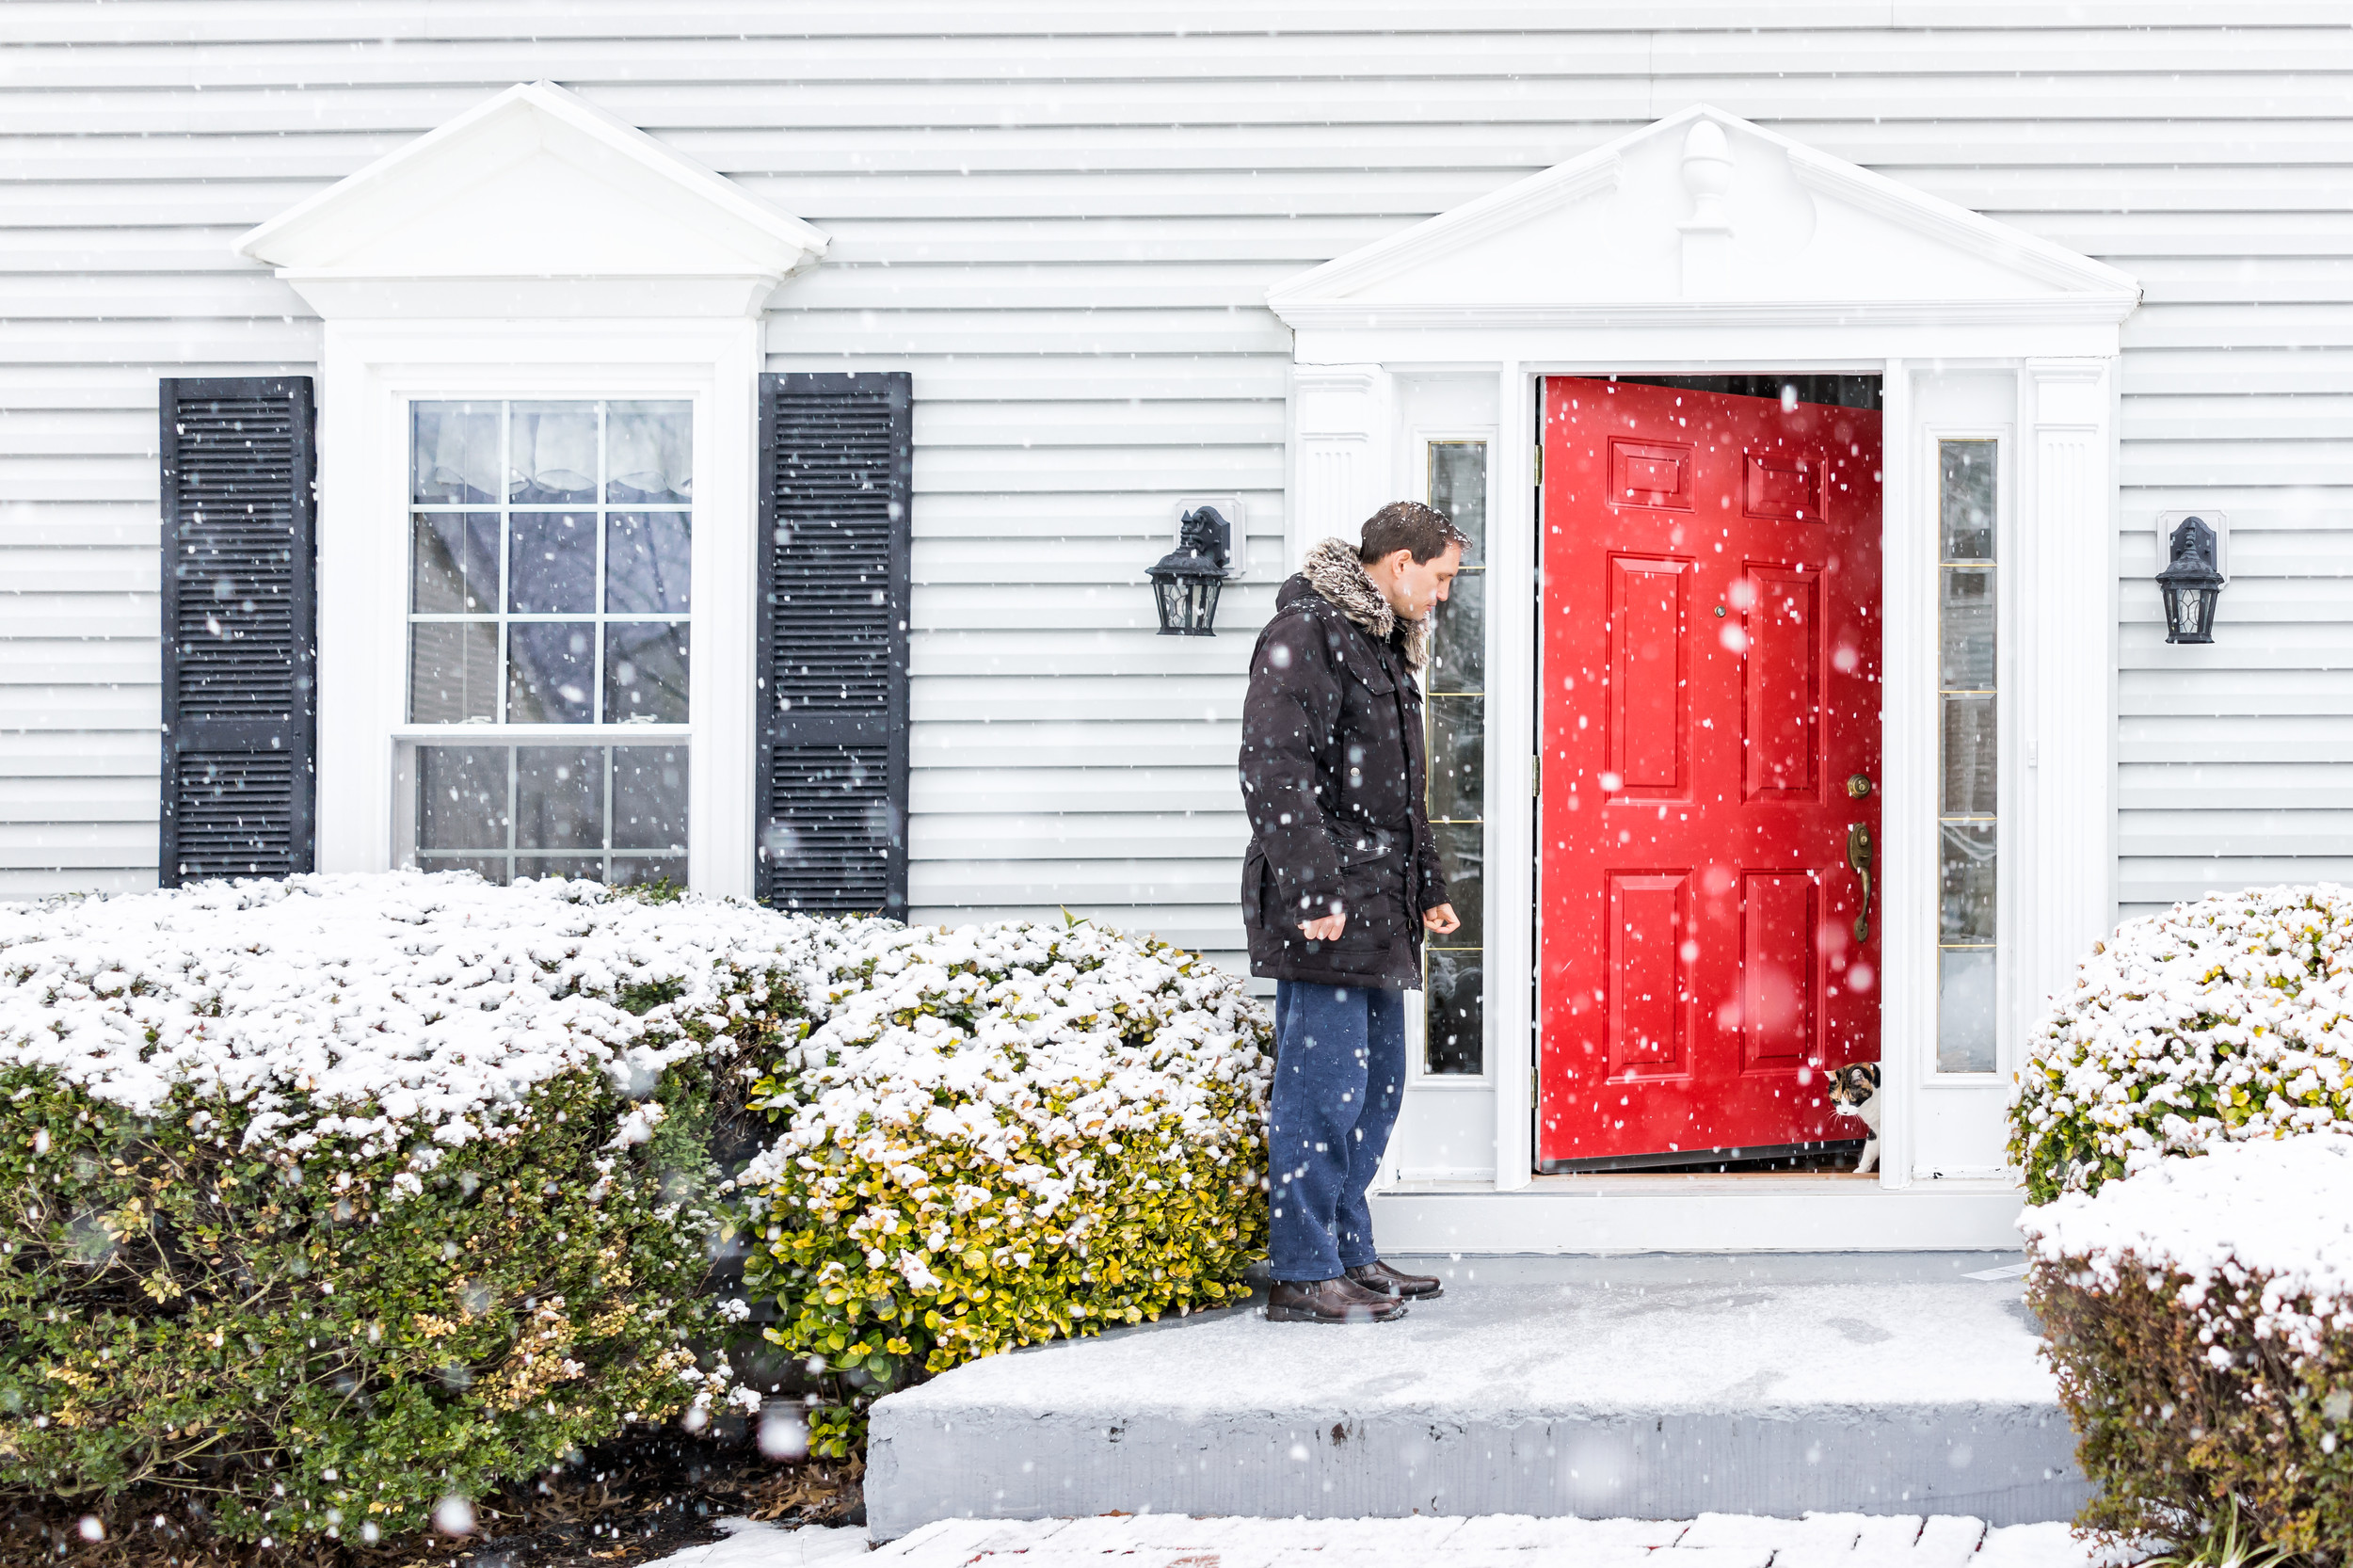 How to make an open house work for you